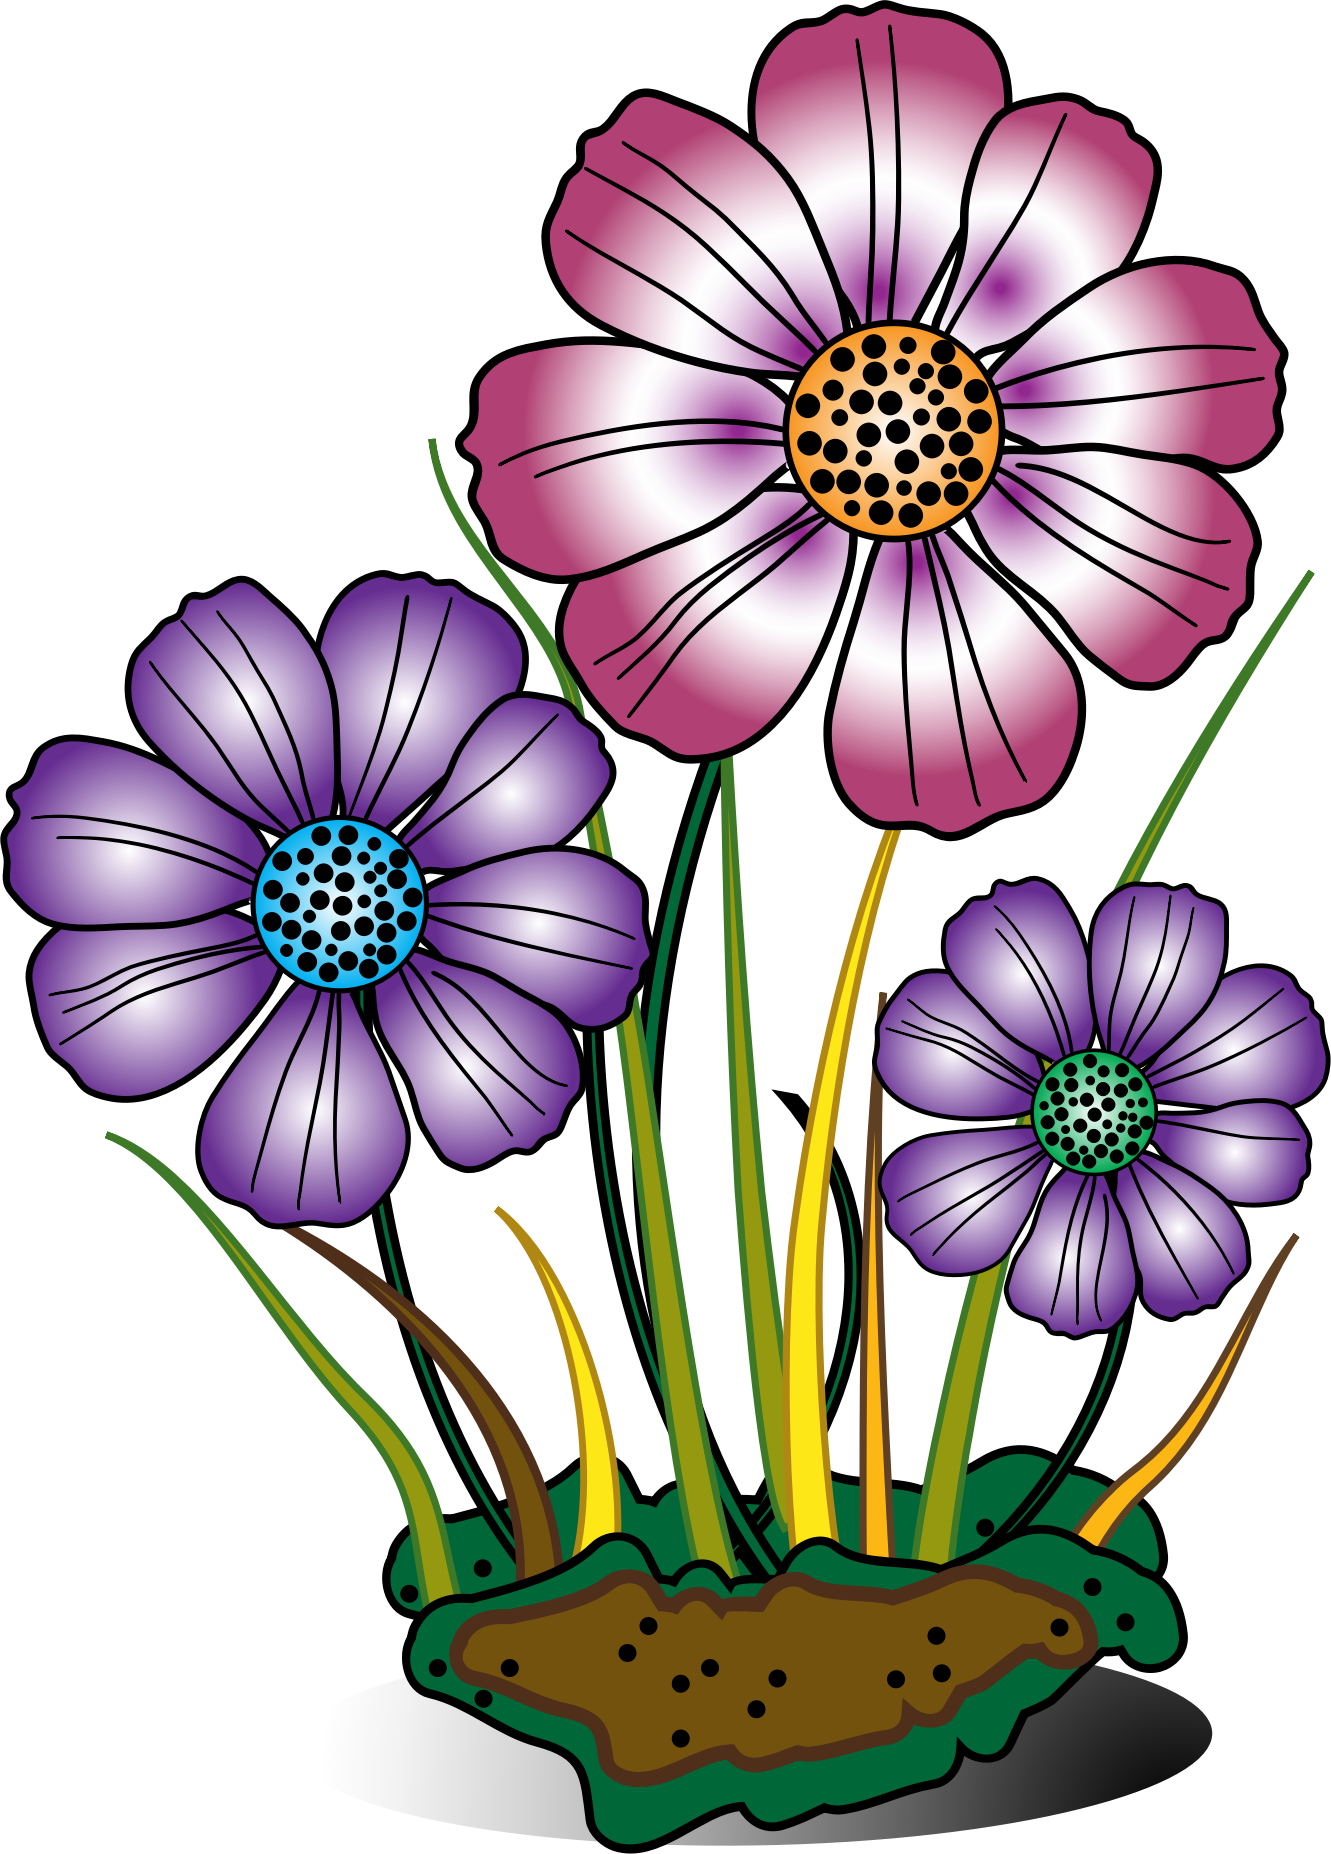 flower in bloom clip art – Cliparts